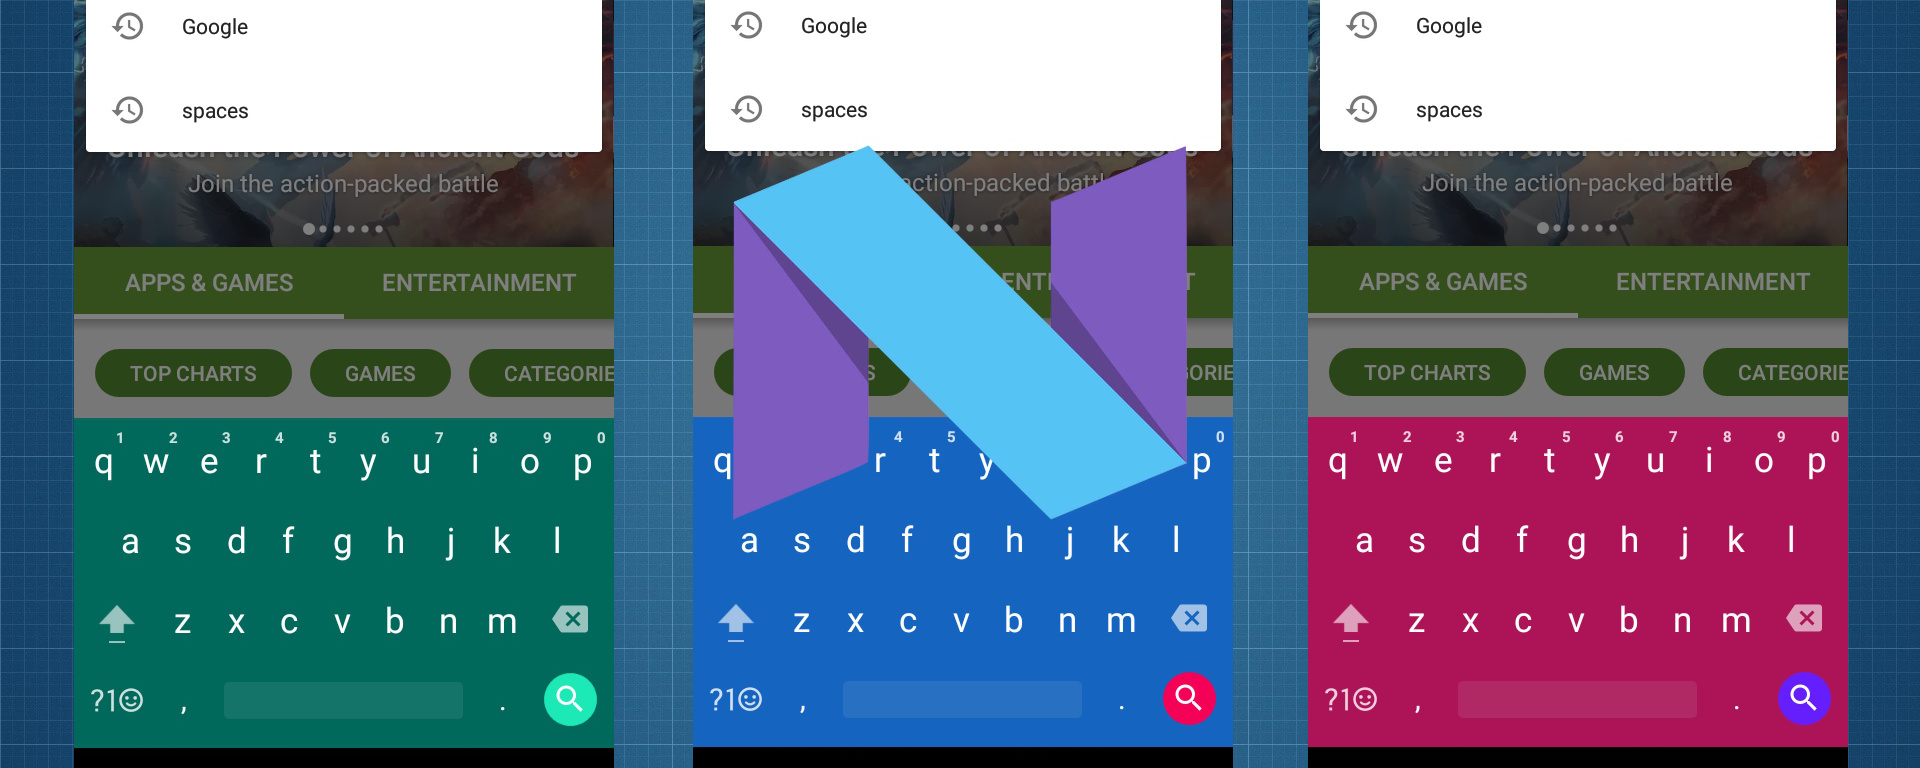 Google theme keyboard